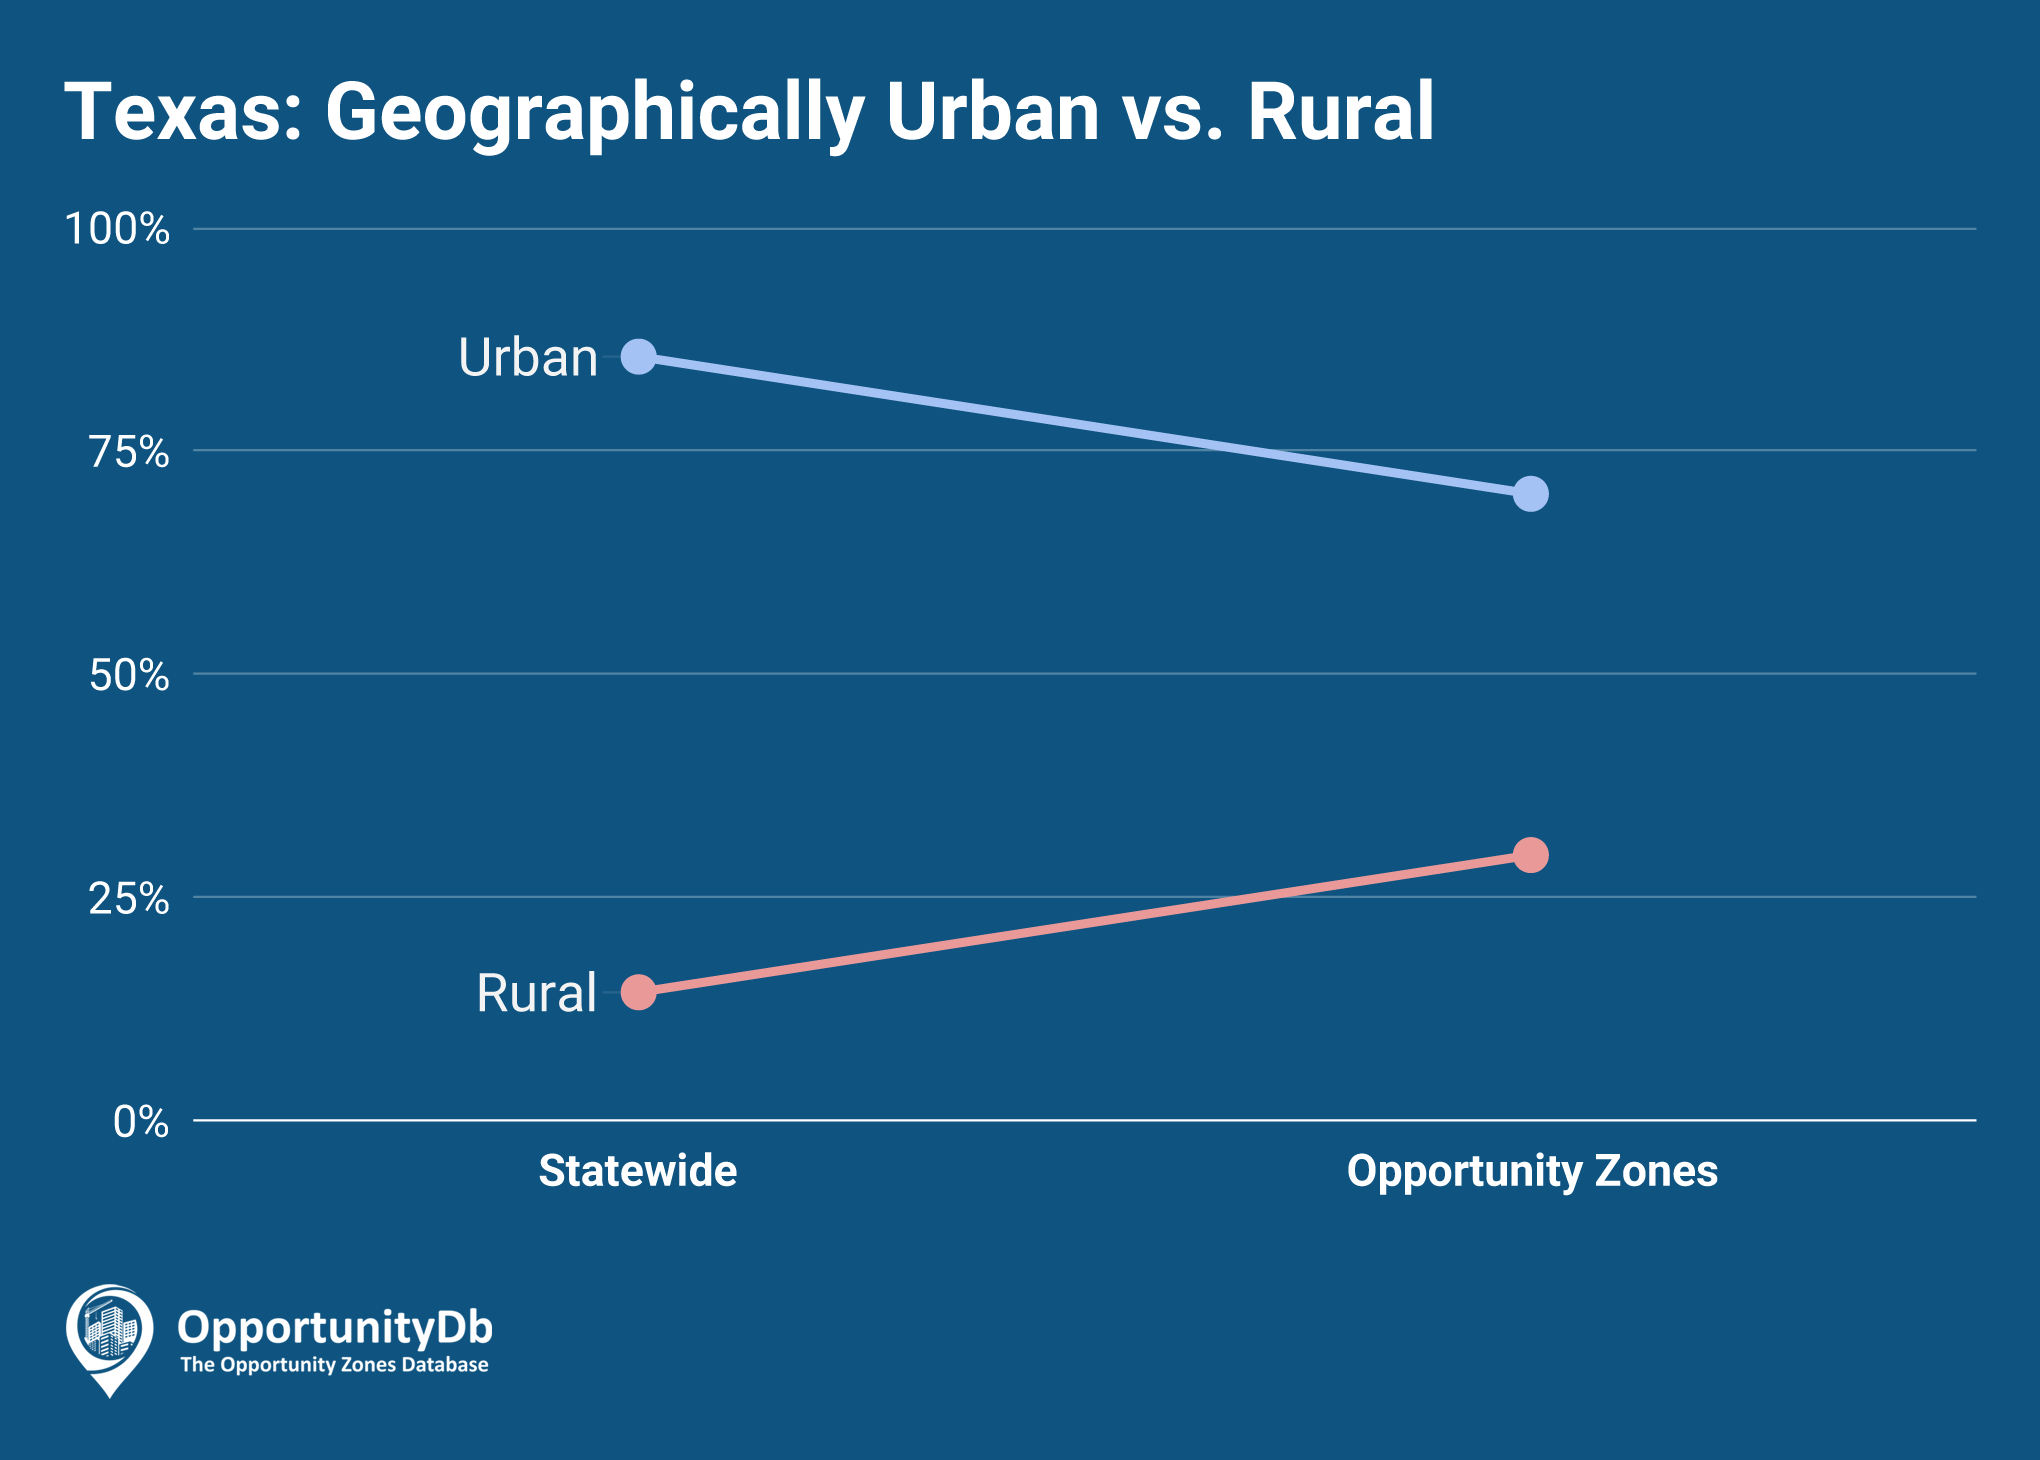 Urban vs. Rural in Texas Opportunity Zones